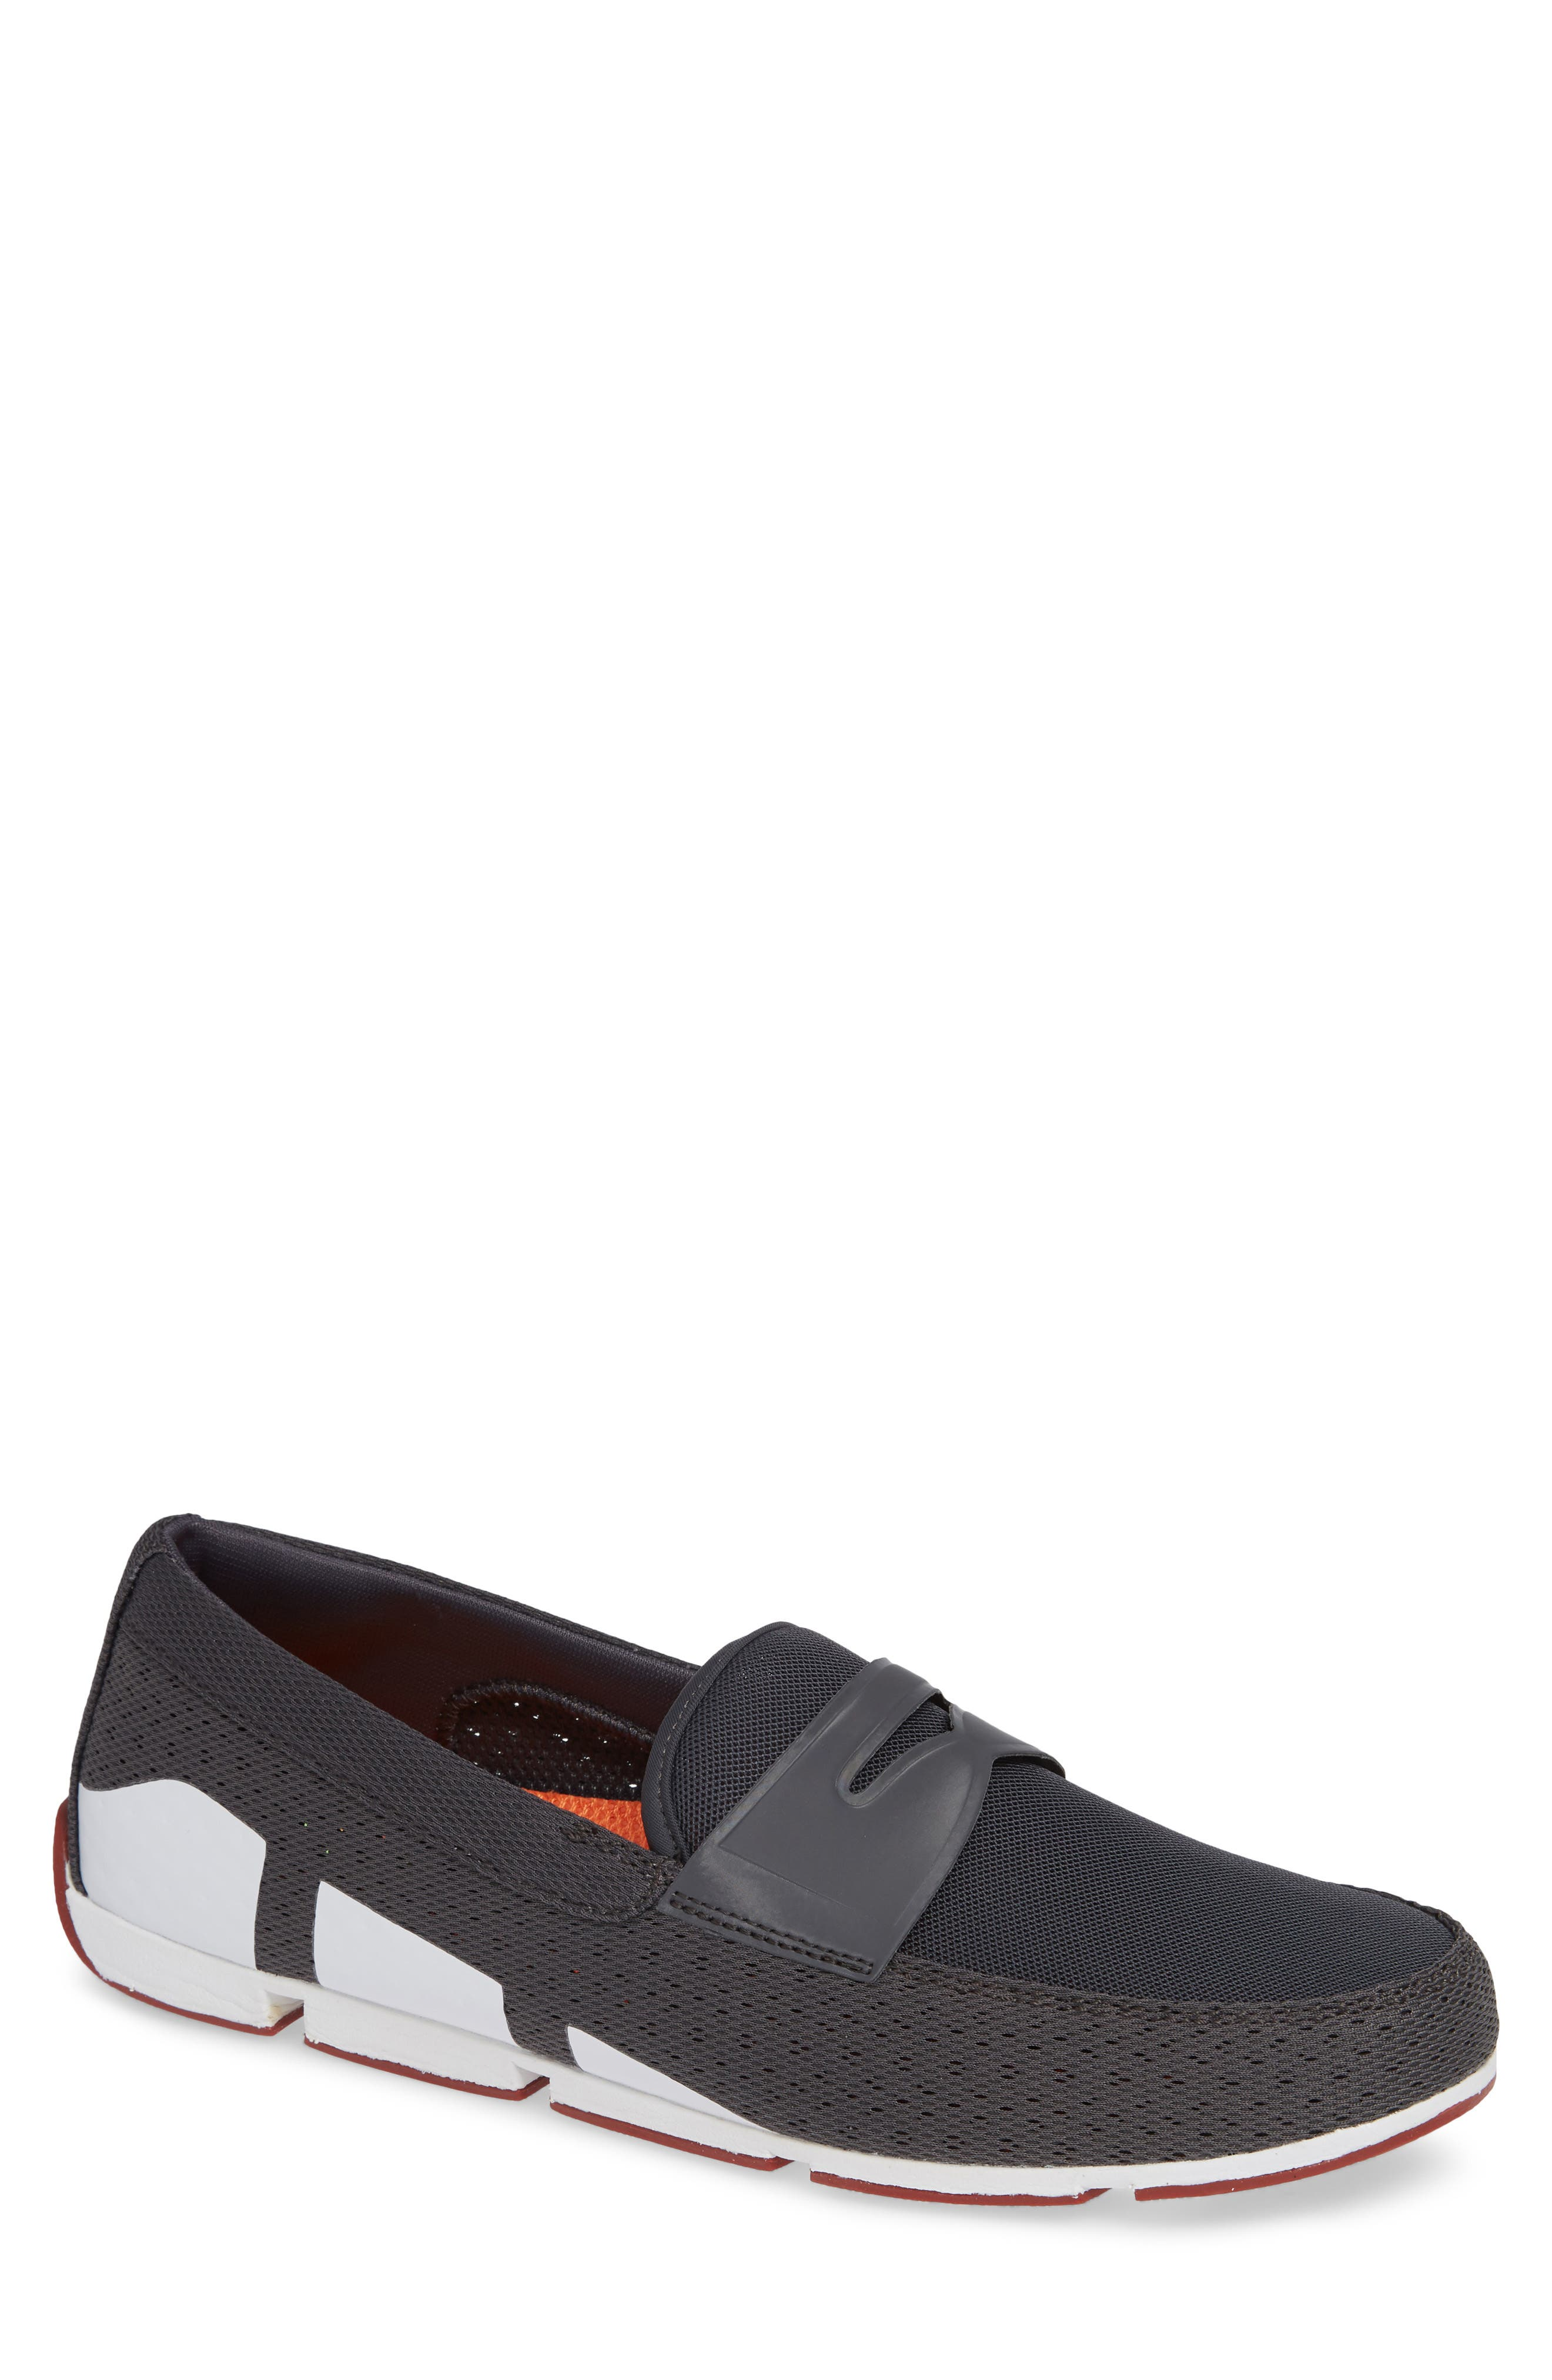 Breeze Penny Loafer,                         Main,                         color, DARK GRAY/RED LACQUER